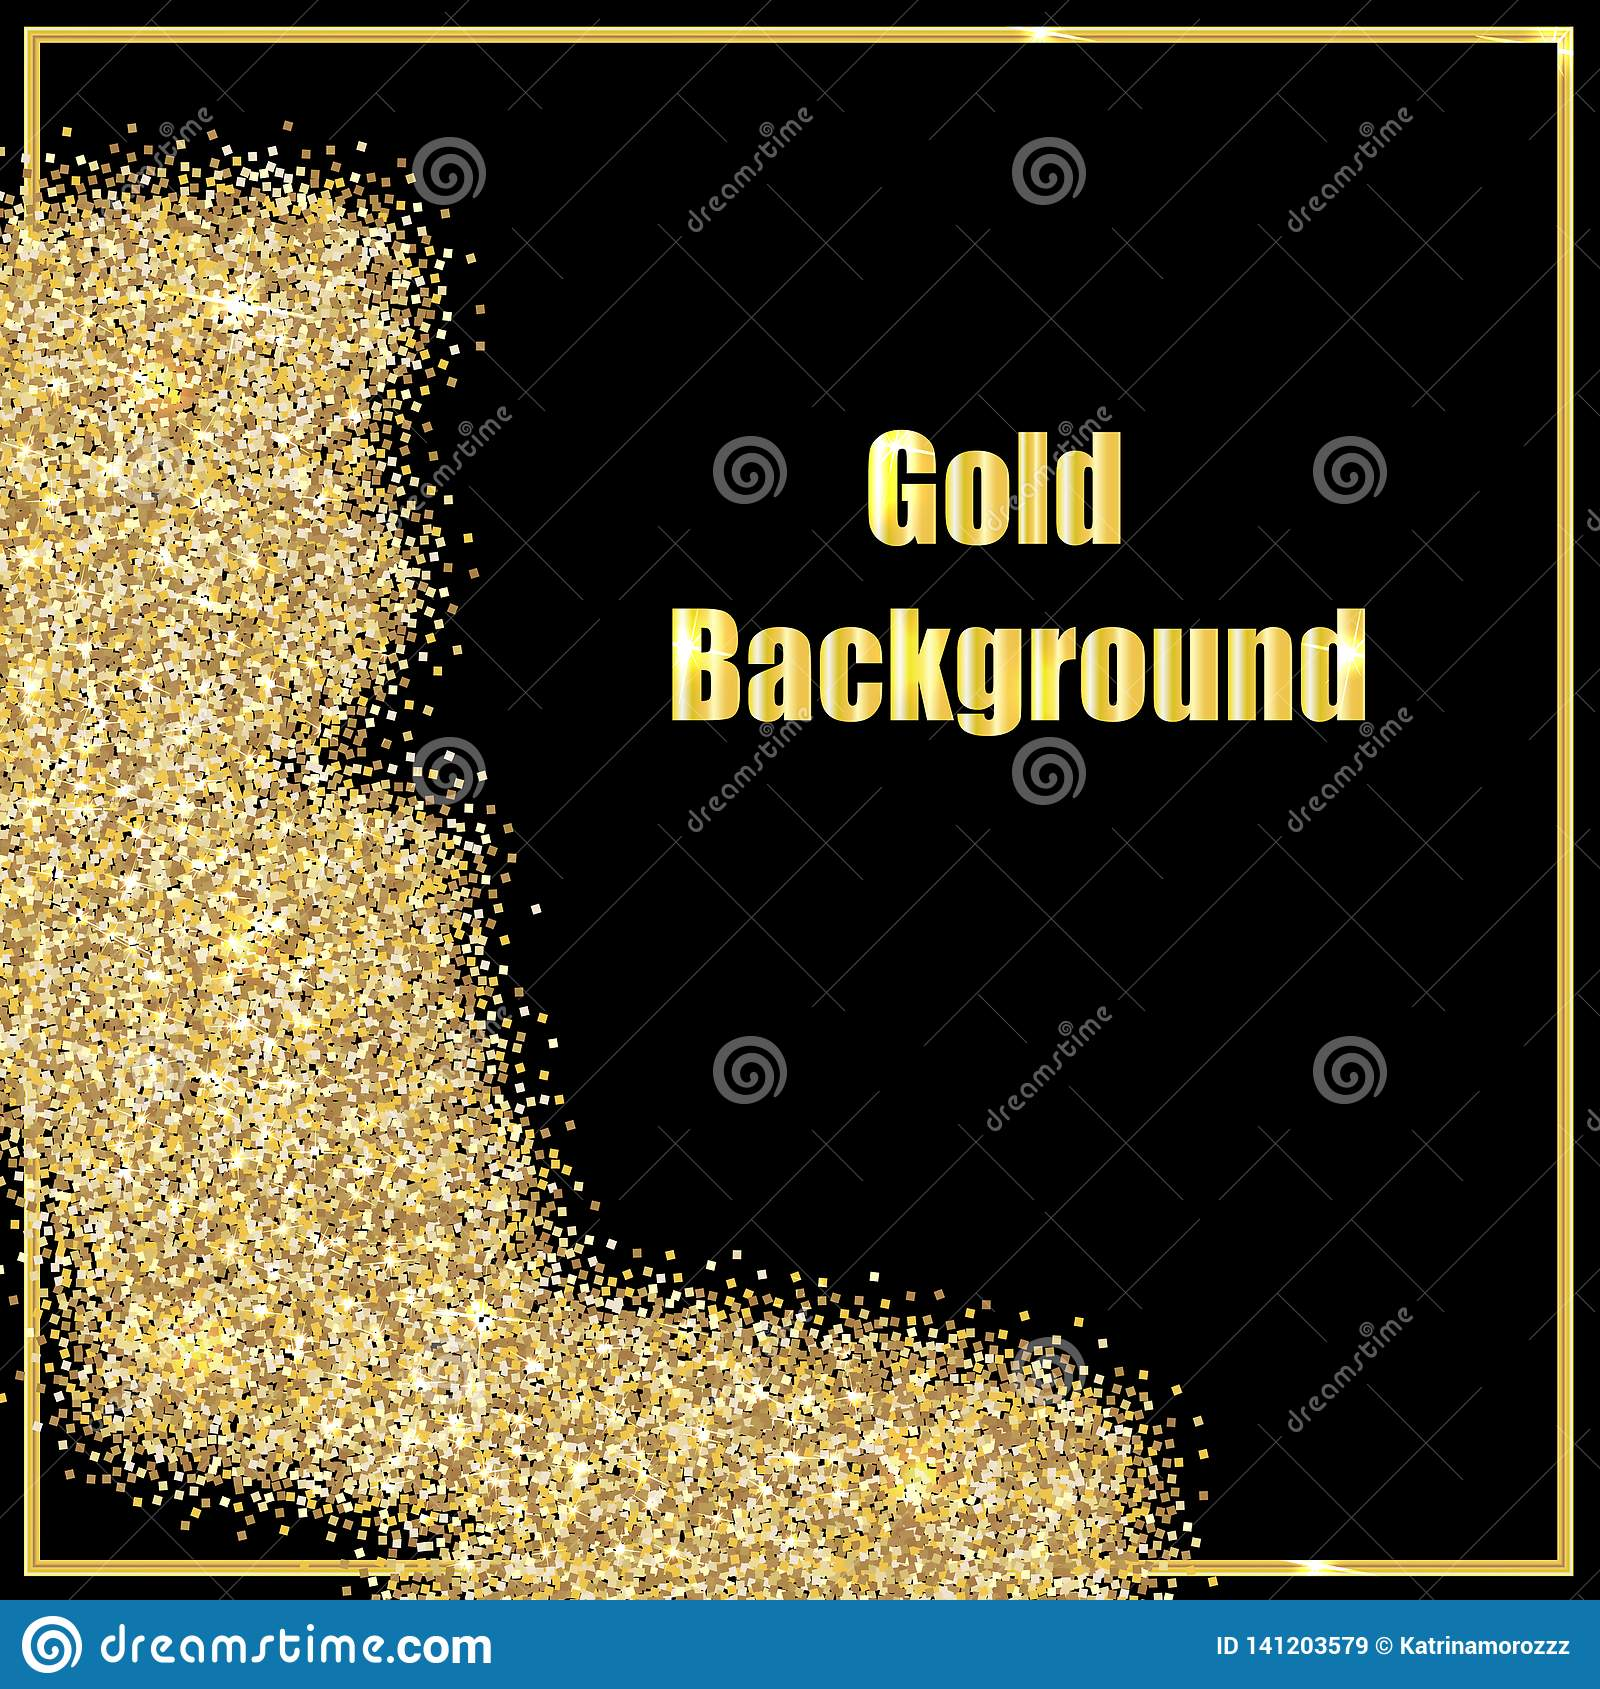 image of gold sequins on a black background .